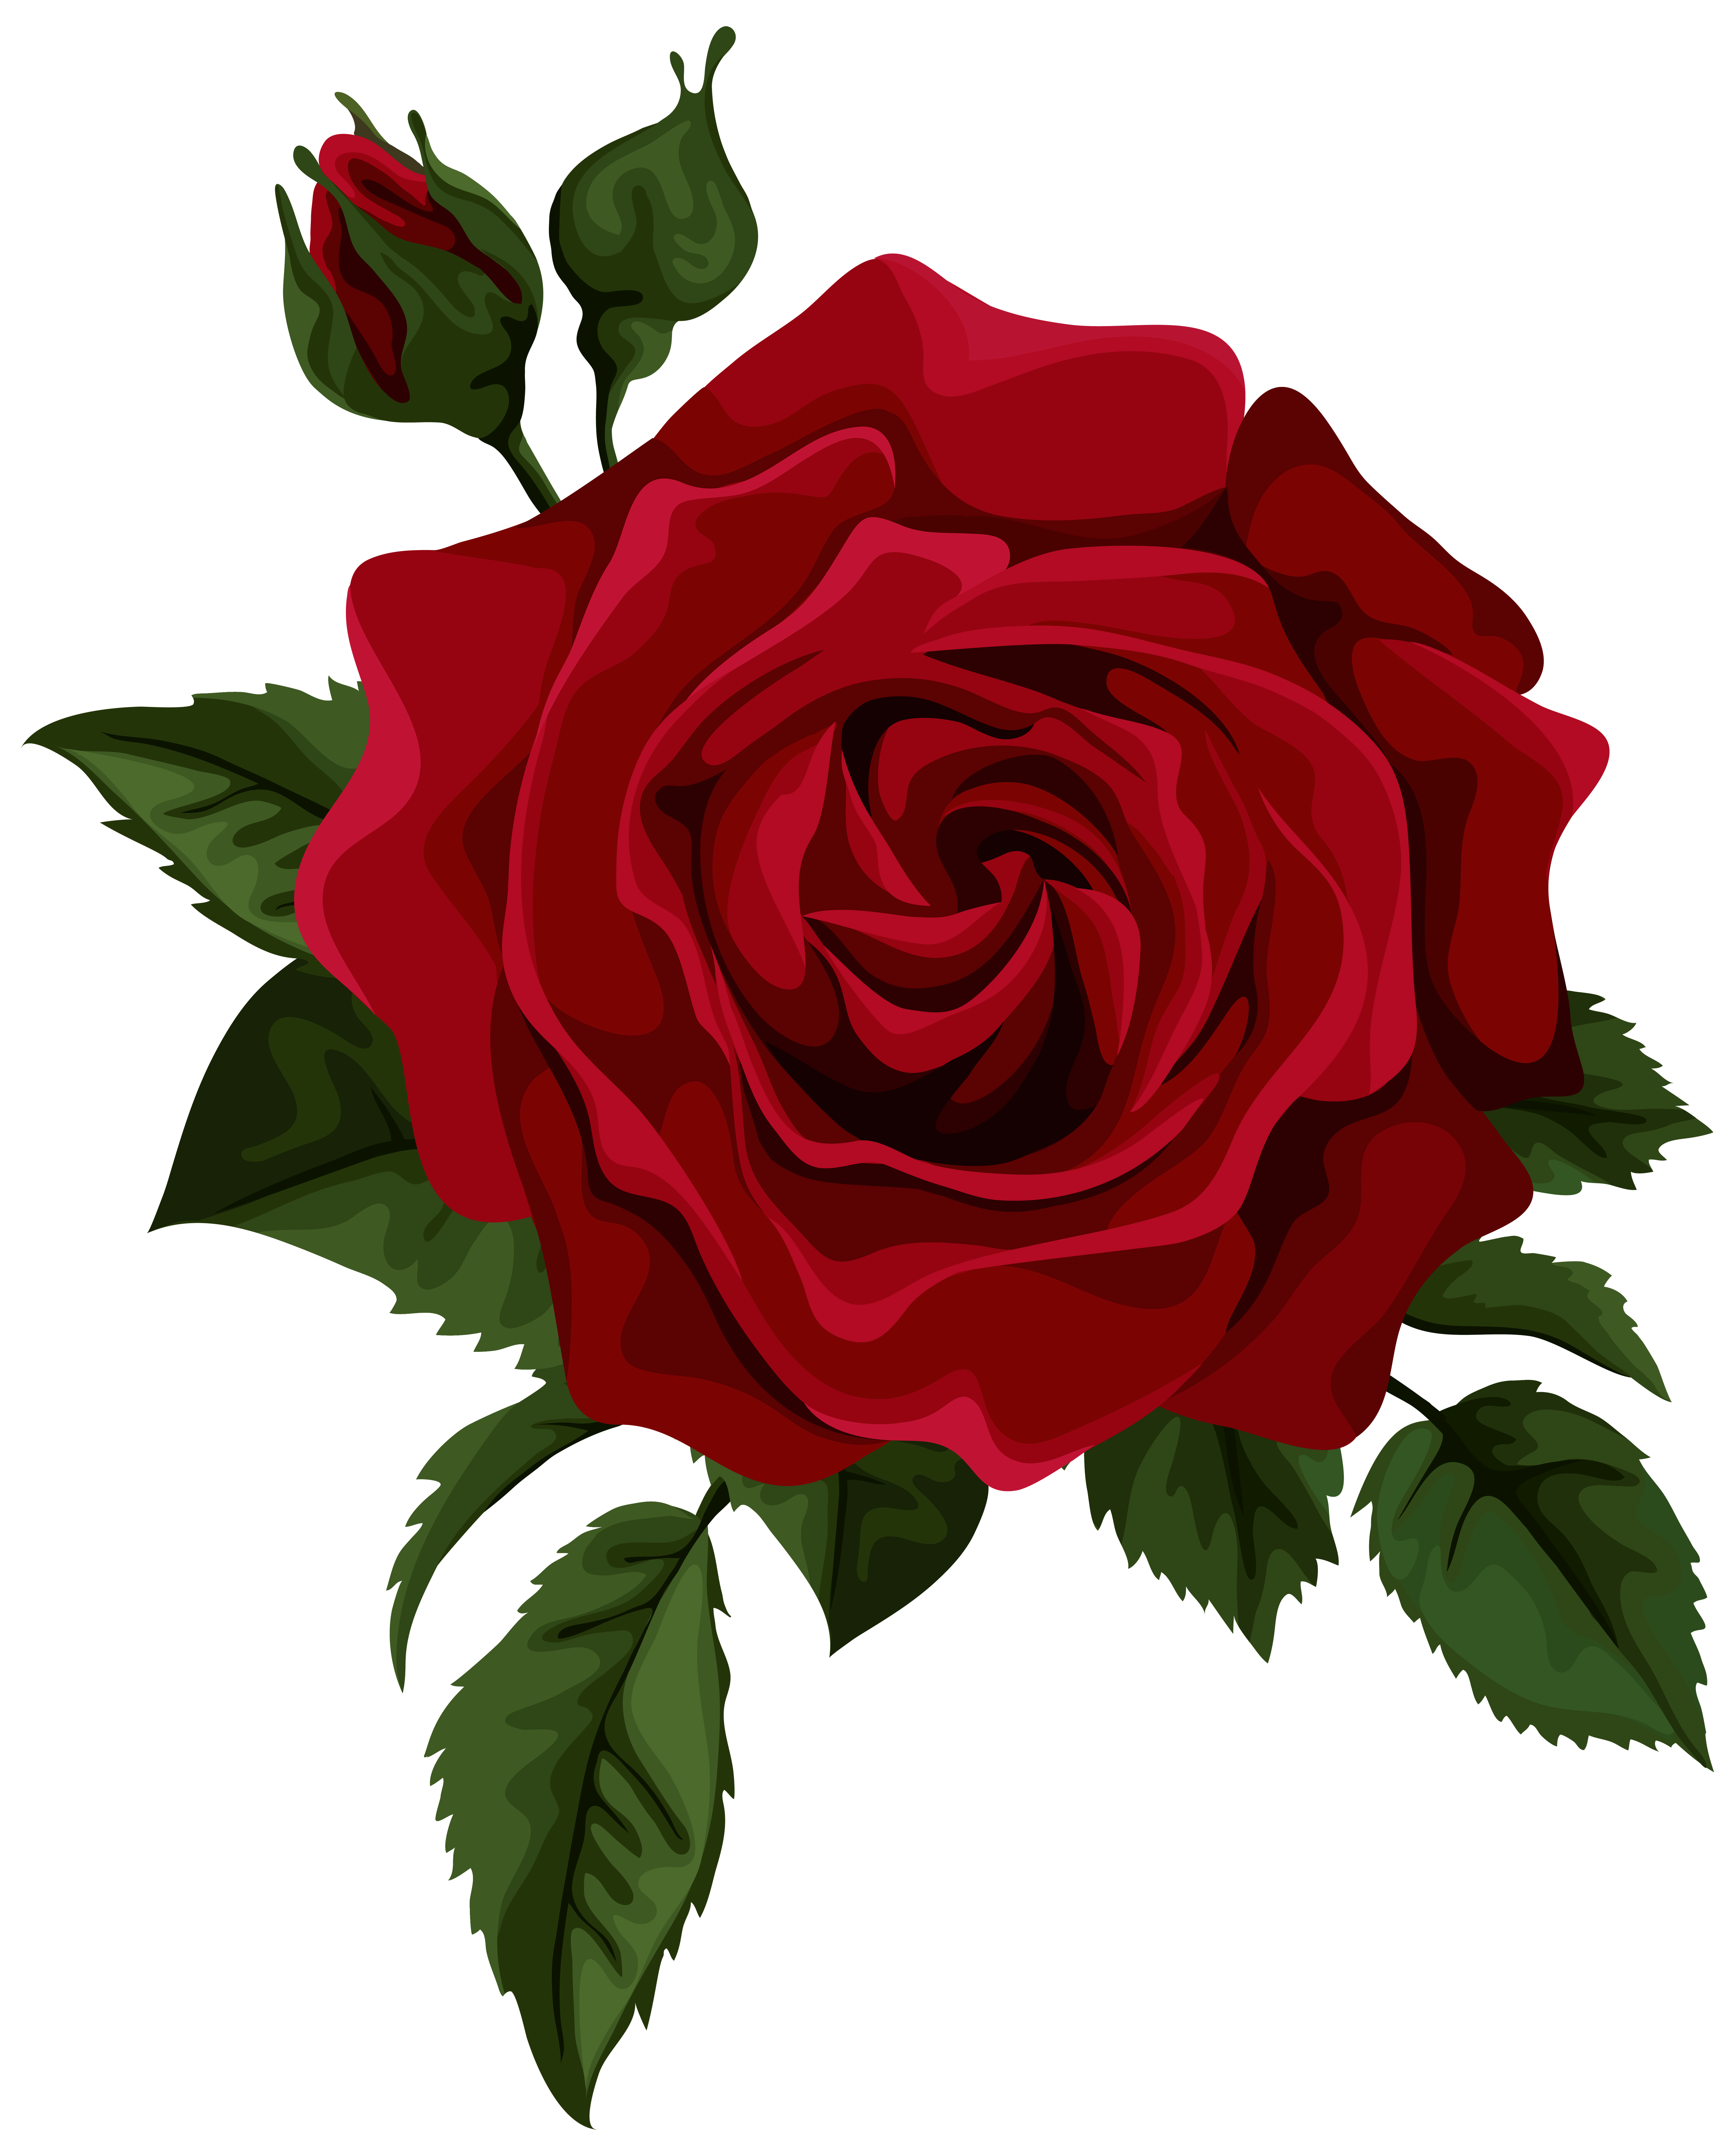 Flower buds clipart. Roses red rose with